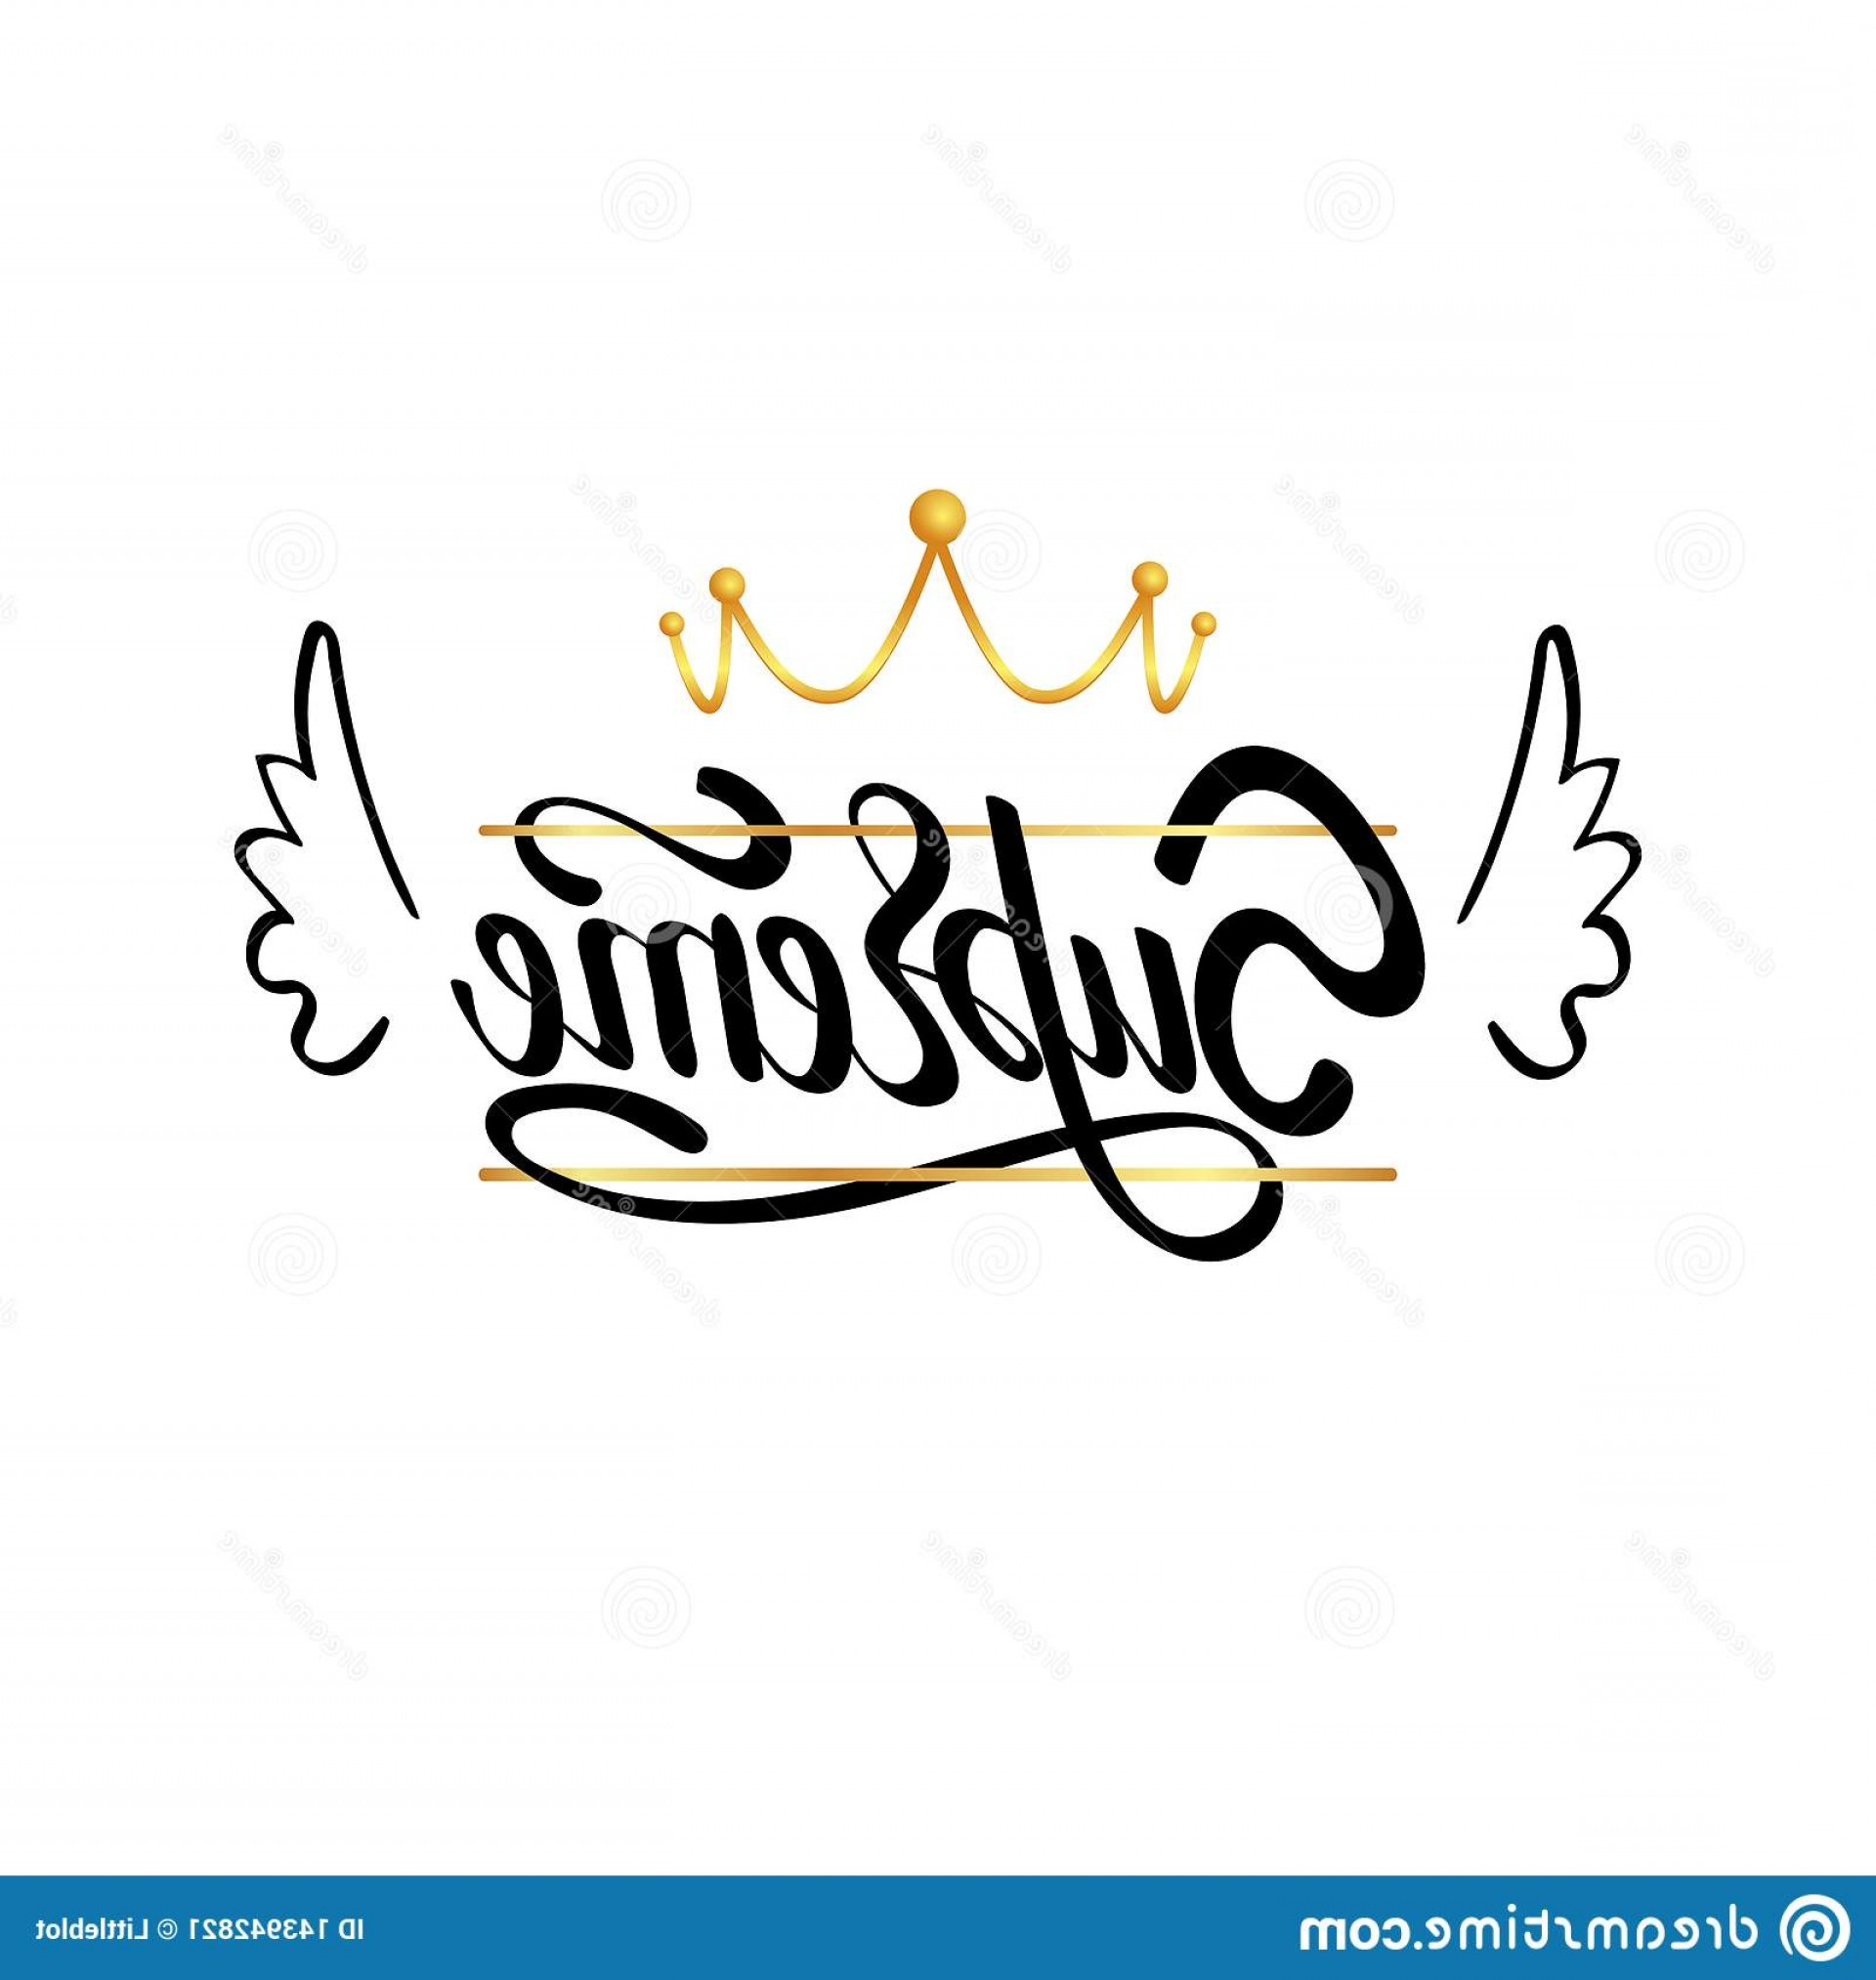 Supreme Logo Vector: Supreme Typography Slogan Print Gold Crown Illustration Lettering Supreme Typography Slogan Print Gold Crown Image